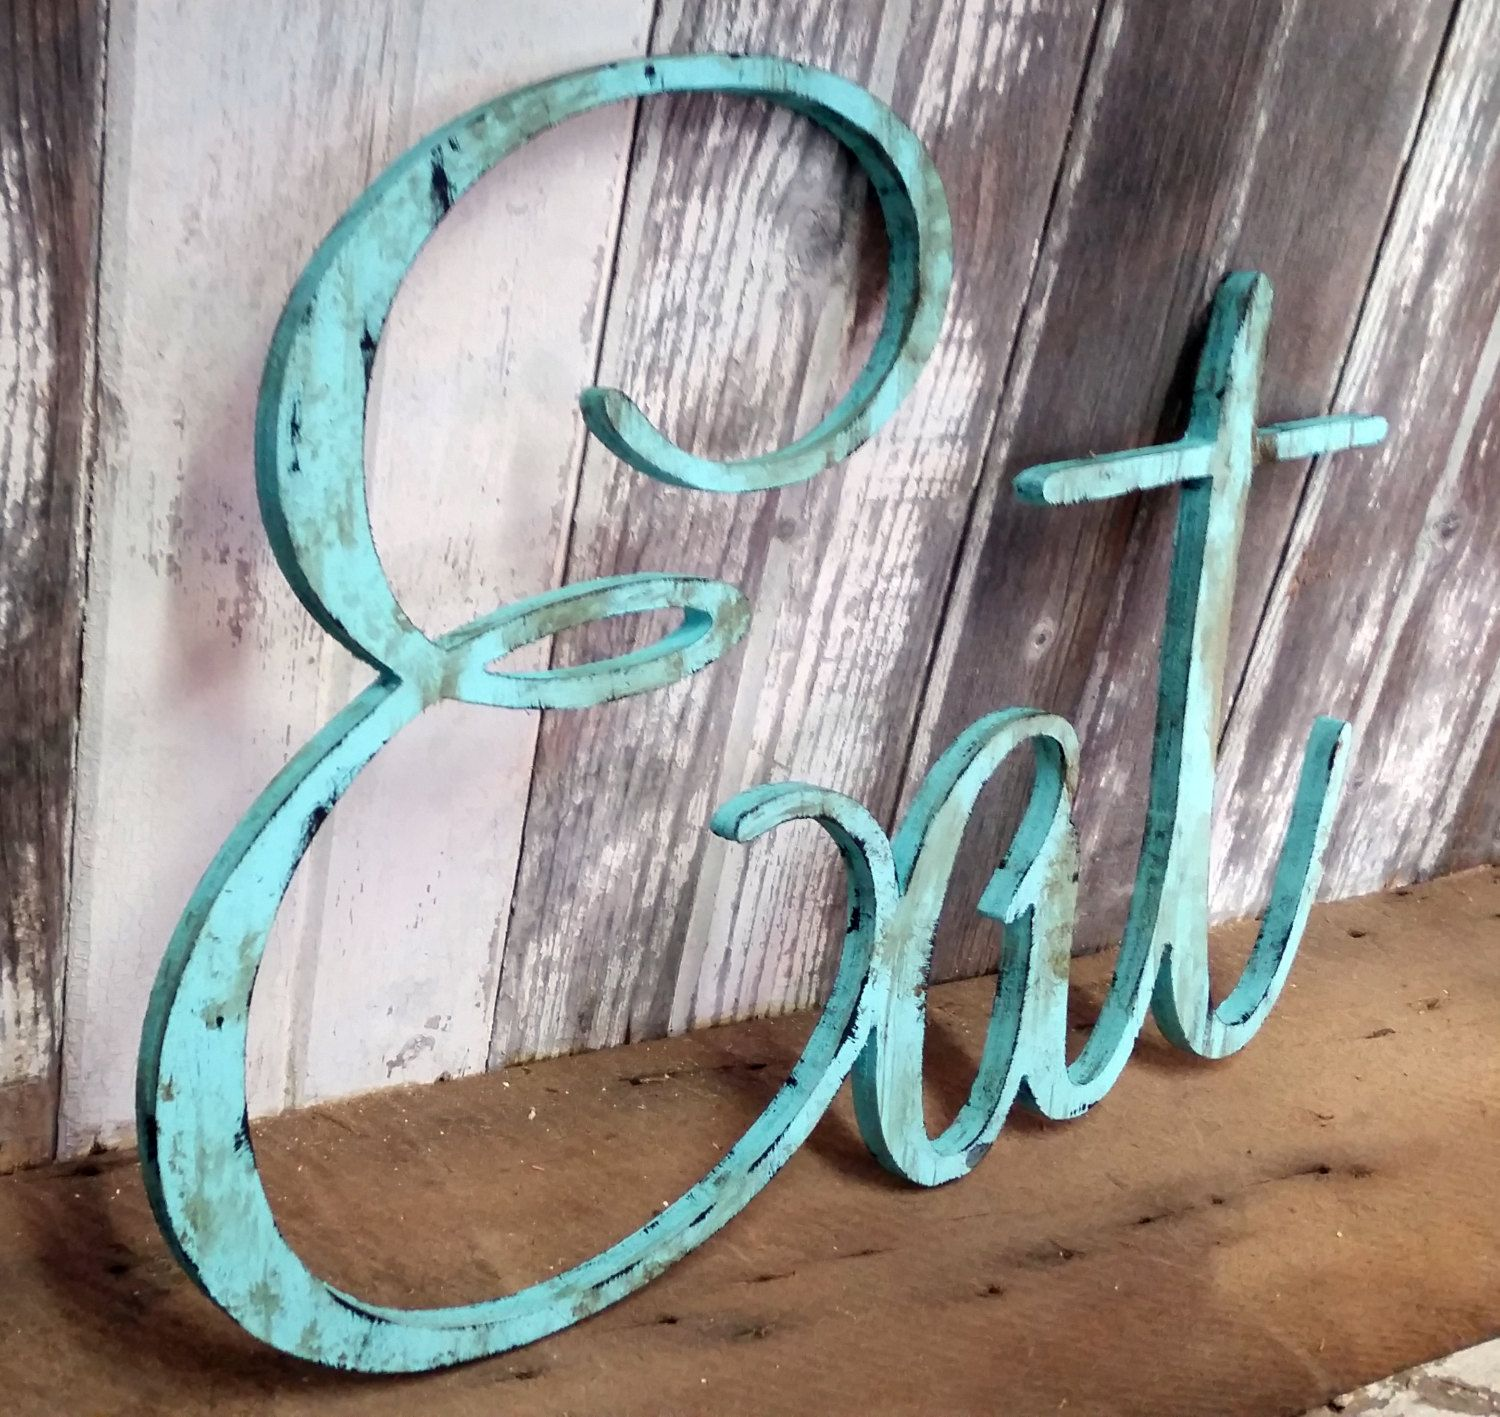 50 Farmhouse Style Gift Ideas From Etsy: Rustic EAT Sign Shabby Chic Aqua Wall Hanging Home Decor